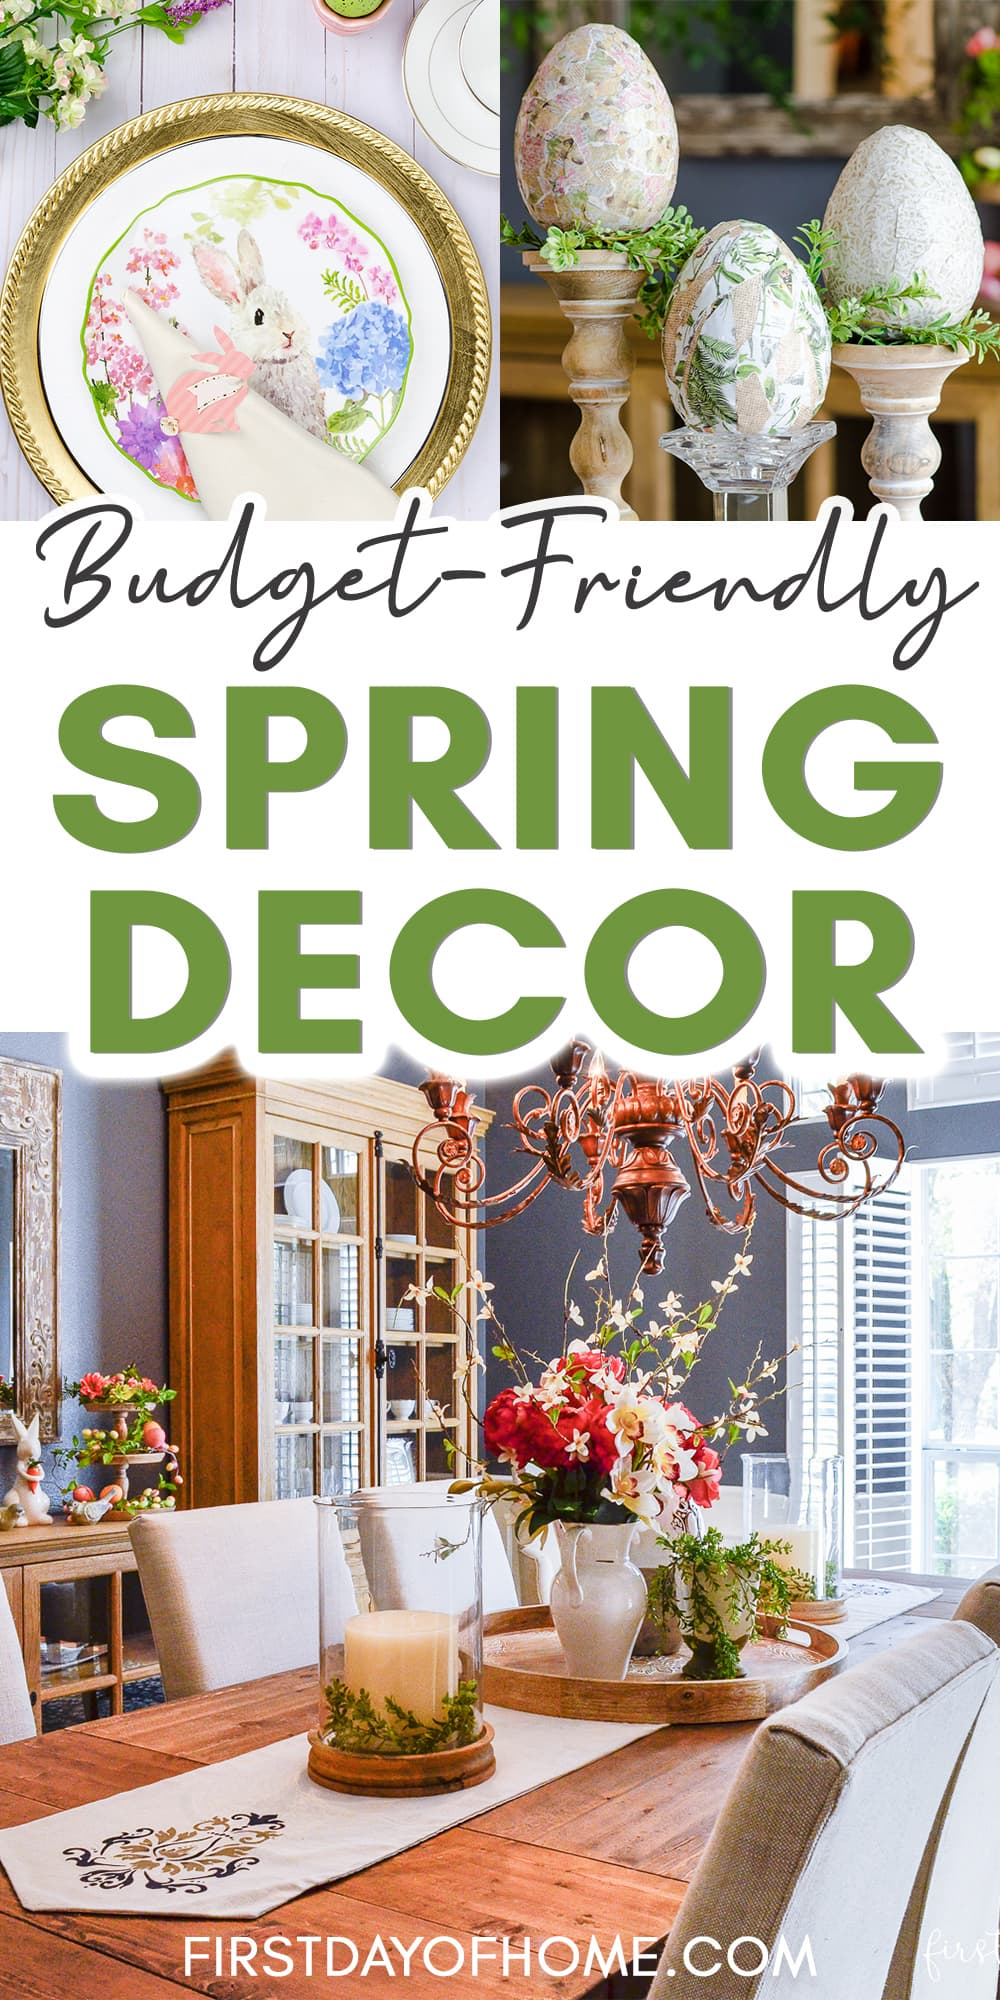 """Dining room decorated for spring, Easter napkin rings and decoupage eggs with text overlay reading """"Budget-friendly Spring Decor"""""""